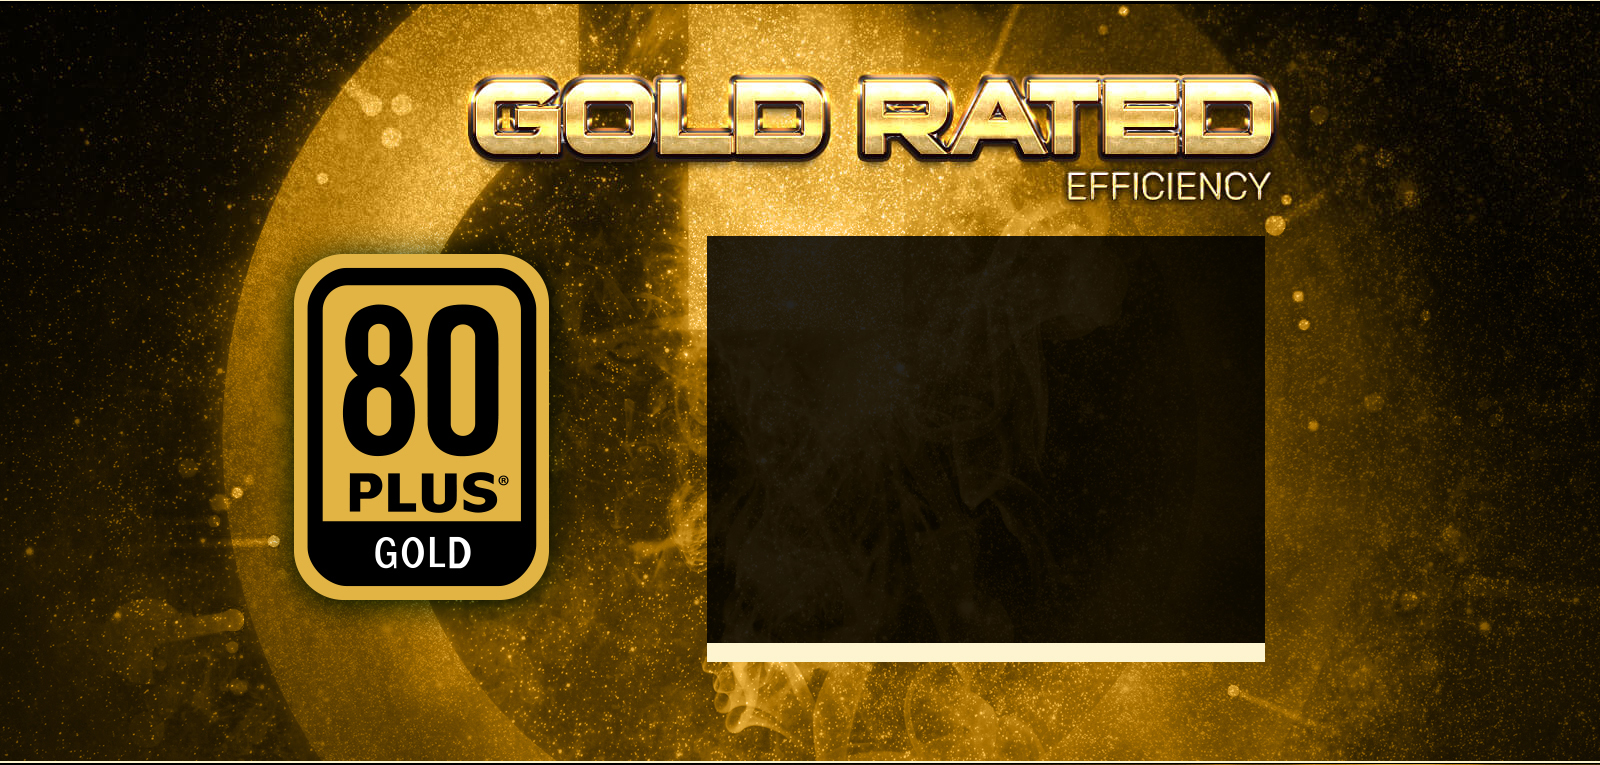 80 Plus gold icon